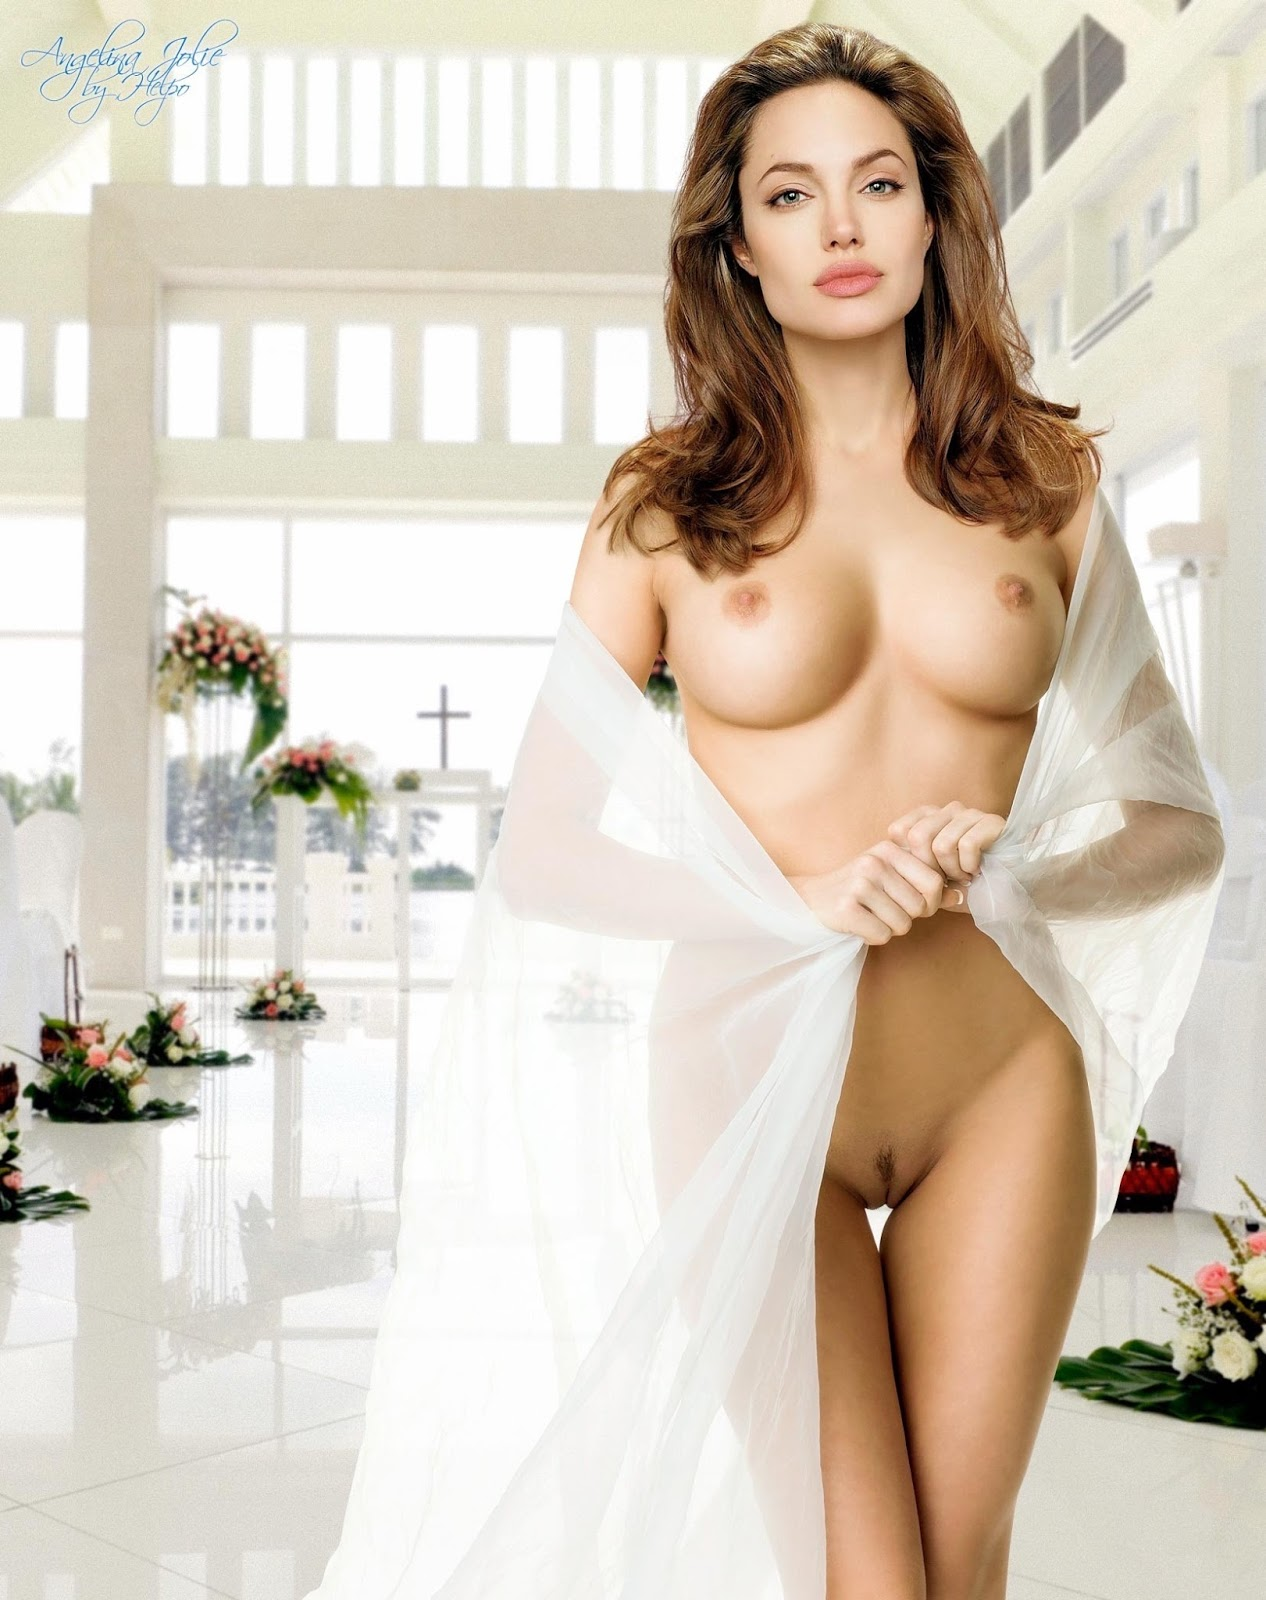 Real nude photos of angelina jolie-9745